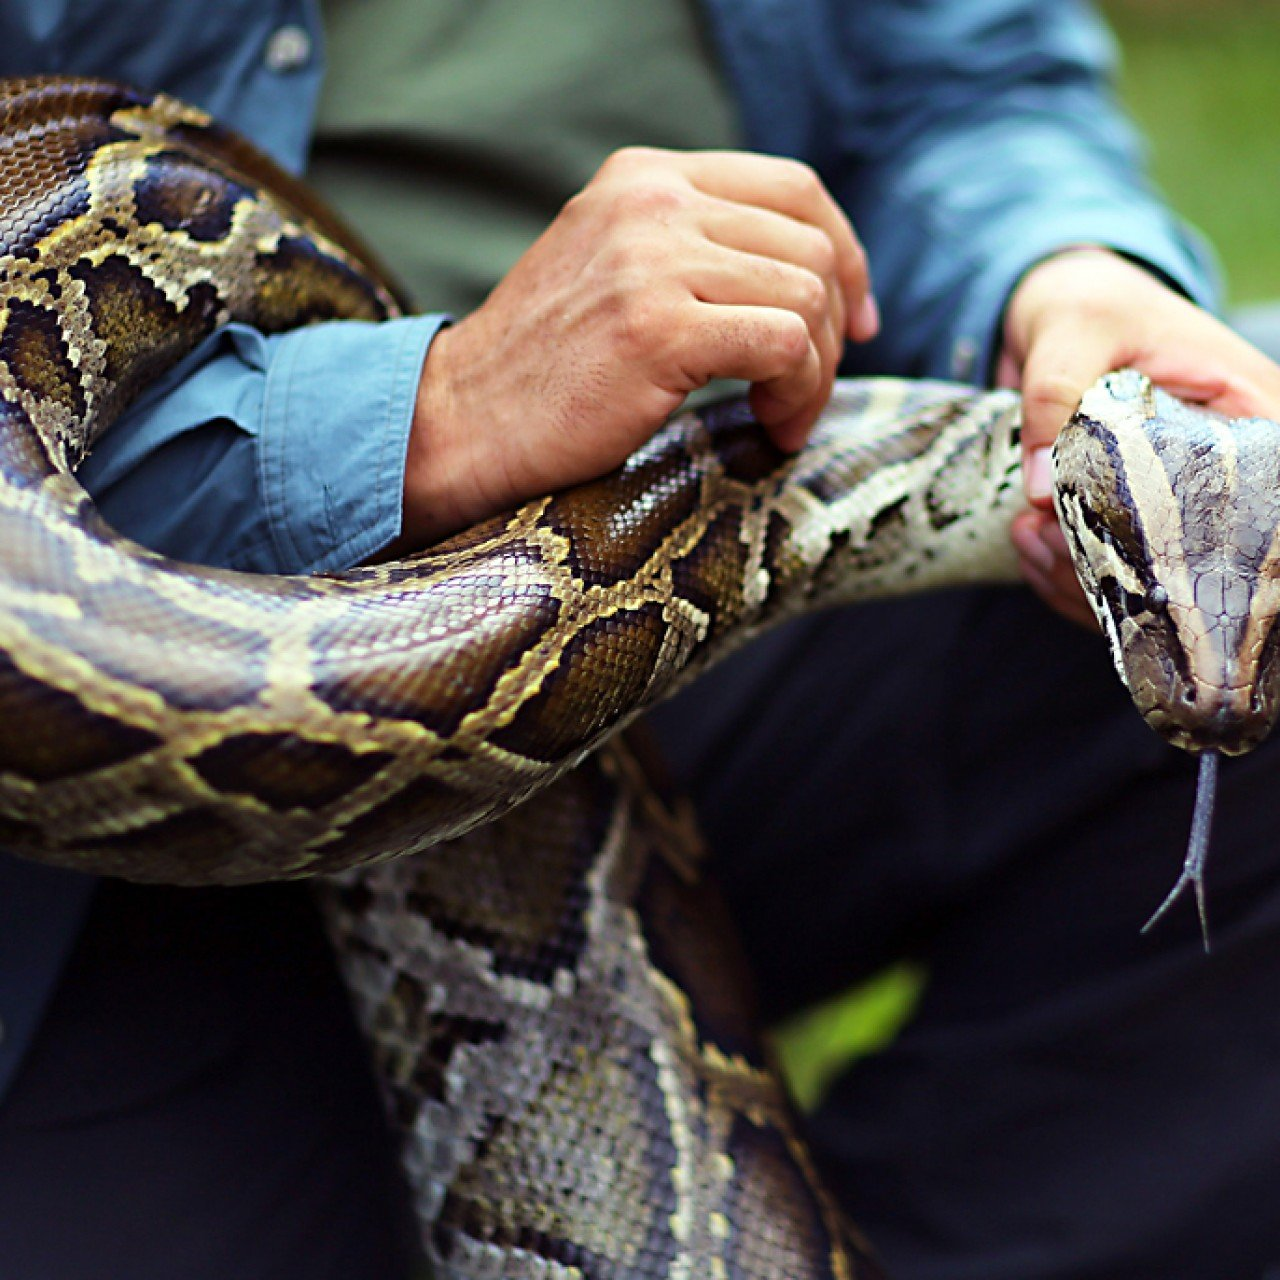 Homing trick of the Burmese python surprises scientists